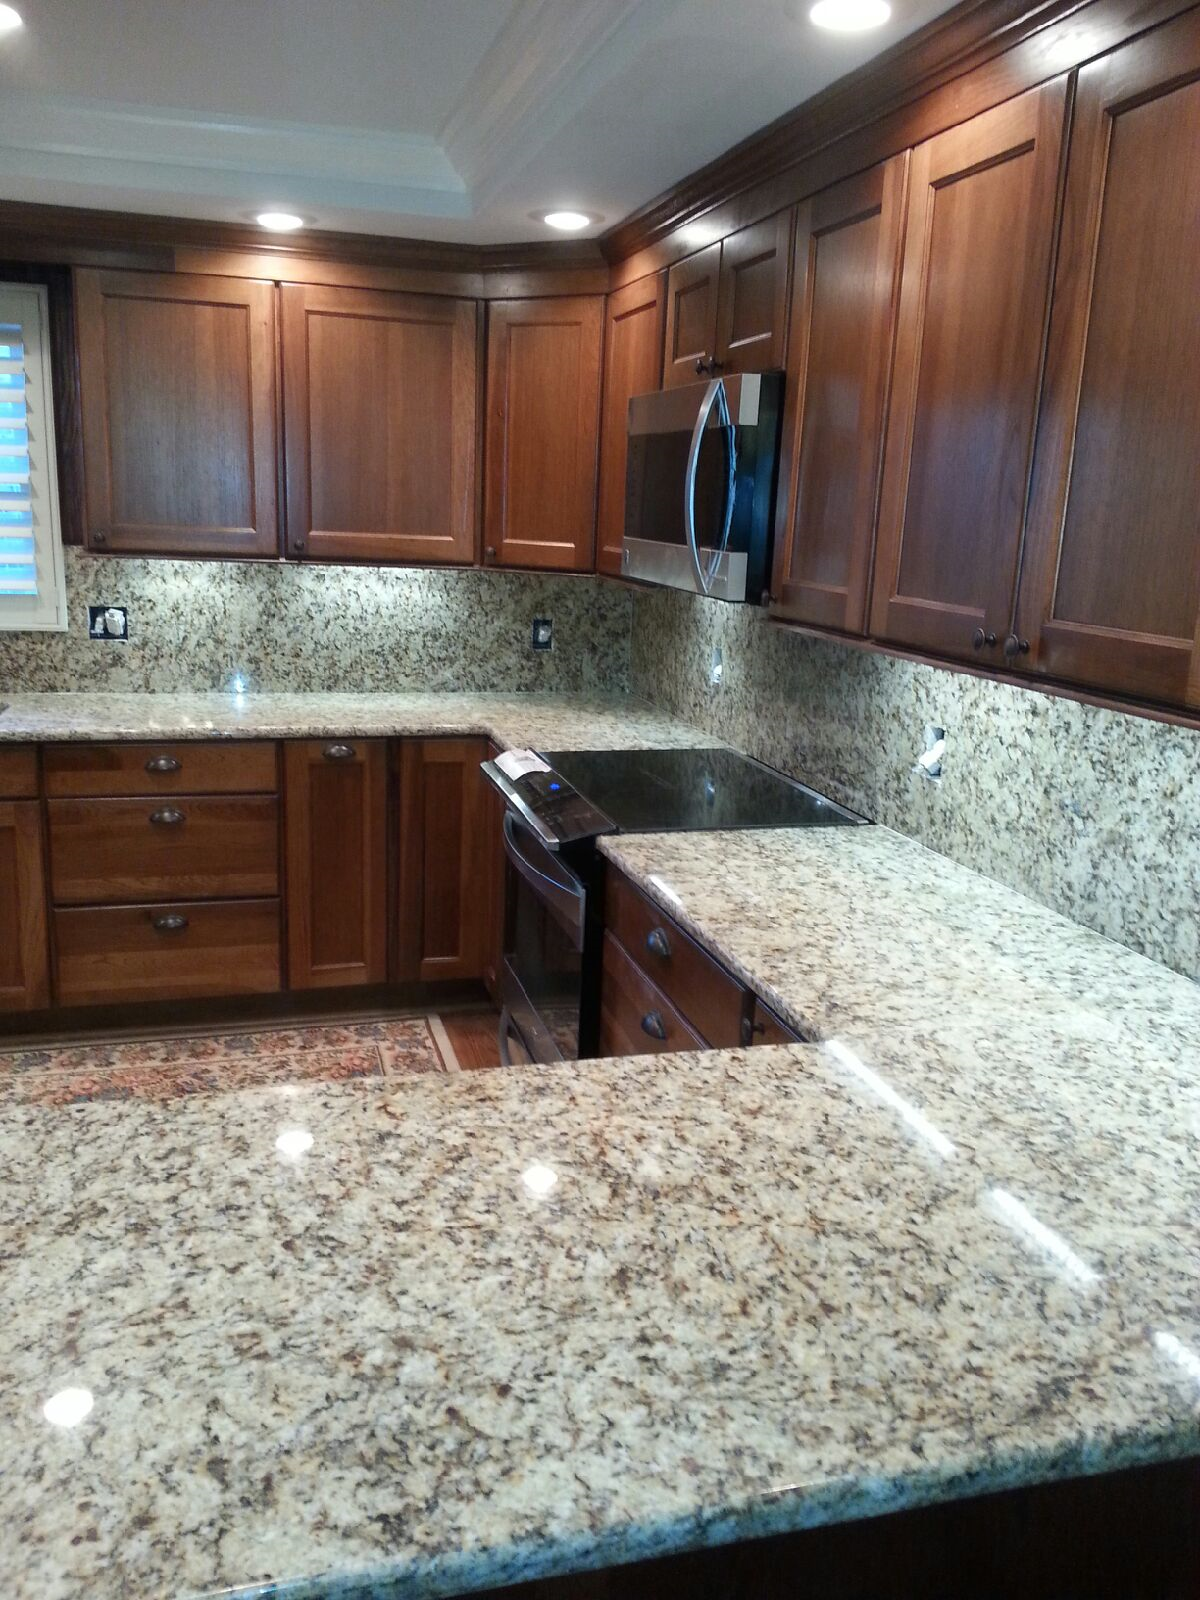 Countertops : Description Granite Countertops.png